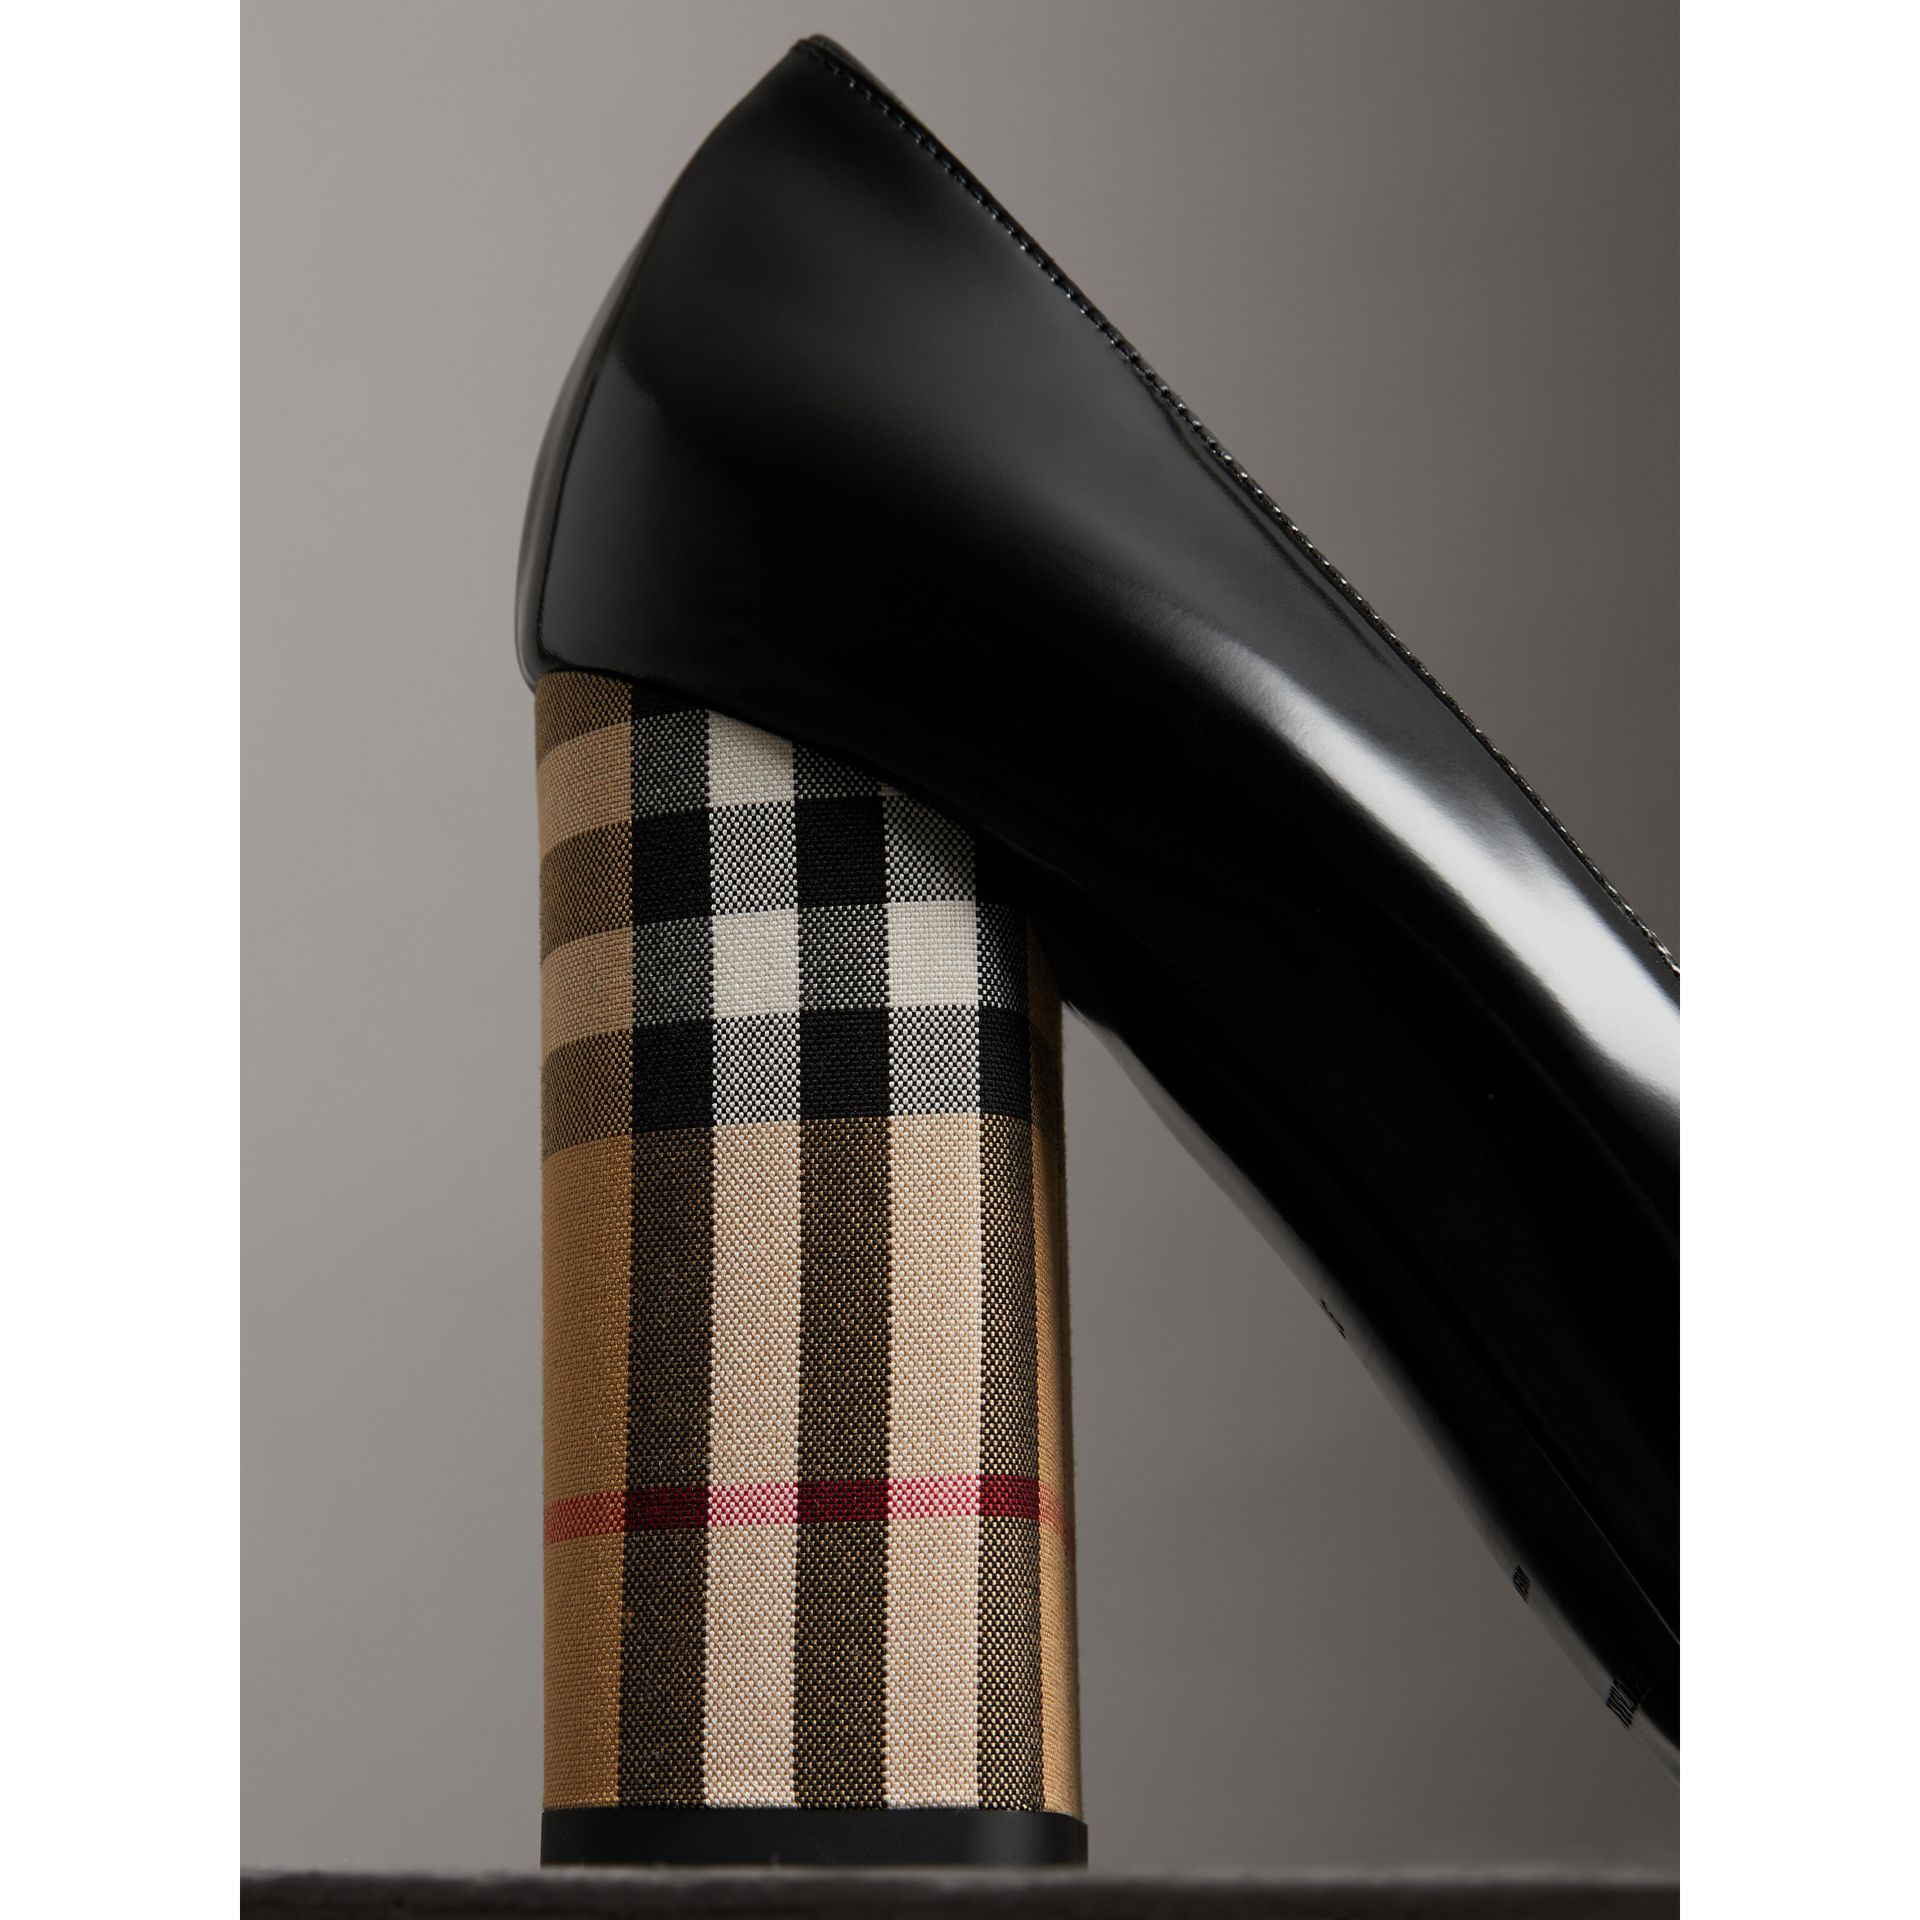 Patent Leather and Vintage Check Block-heel Pumps in Black - Women | Burberry United States - gallery image 1